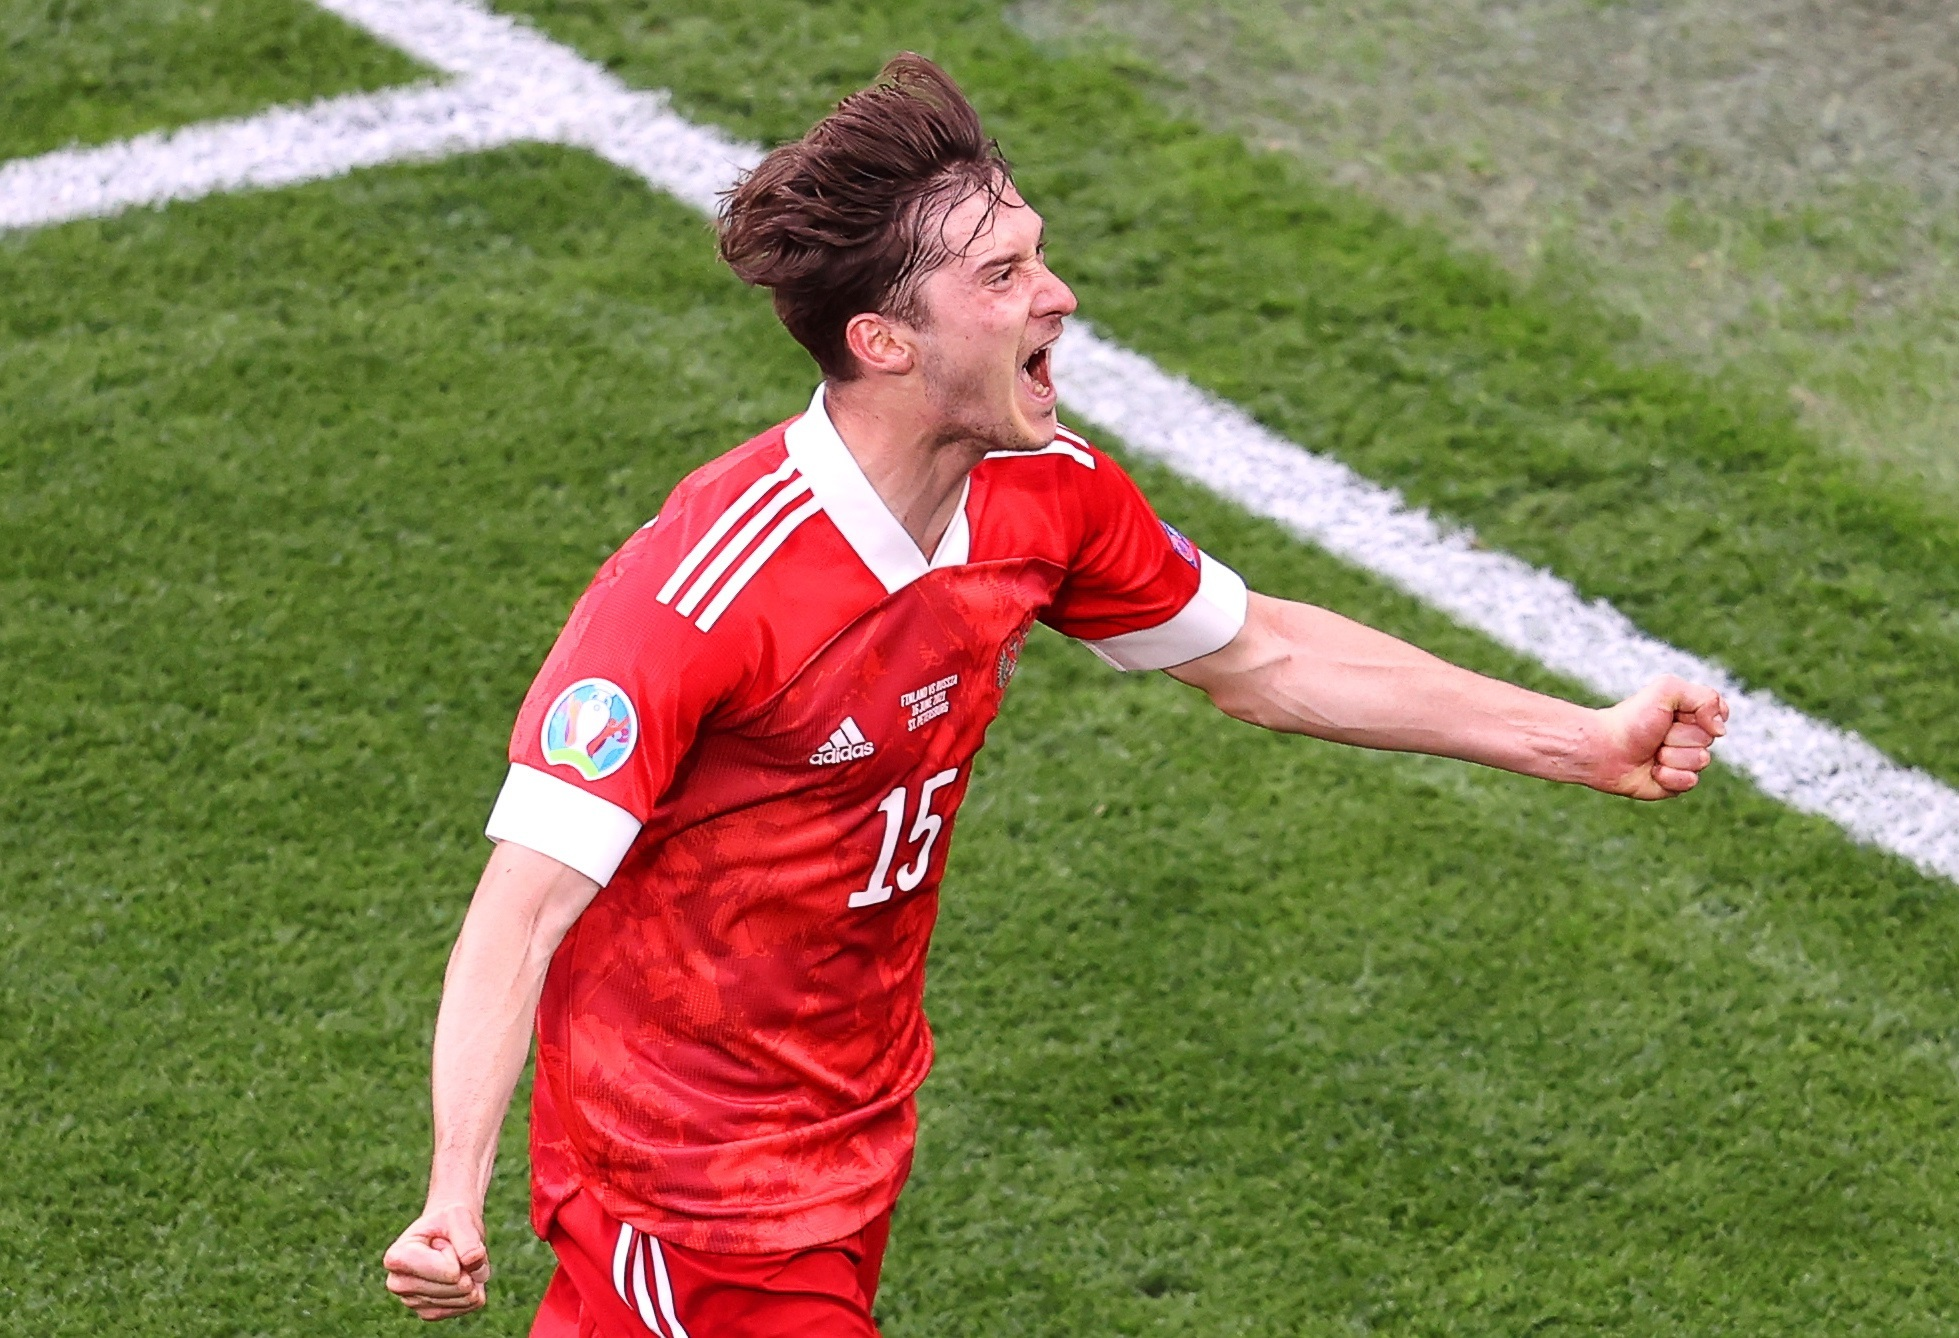 Russia beat Finland on the day of the European Championship